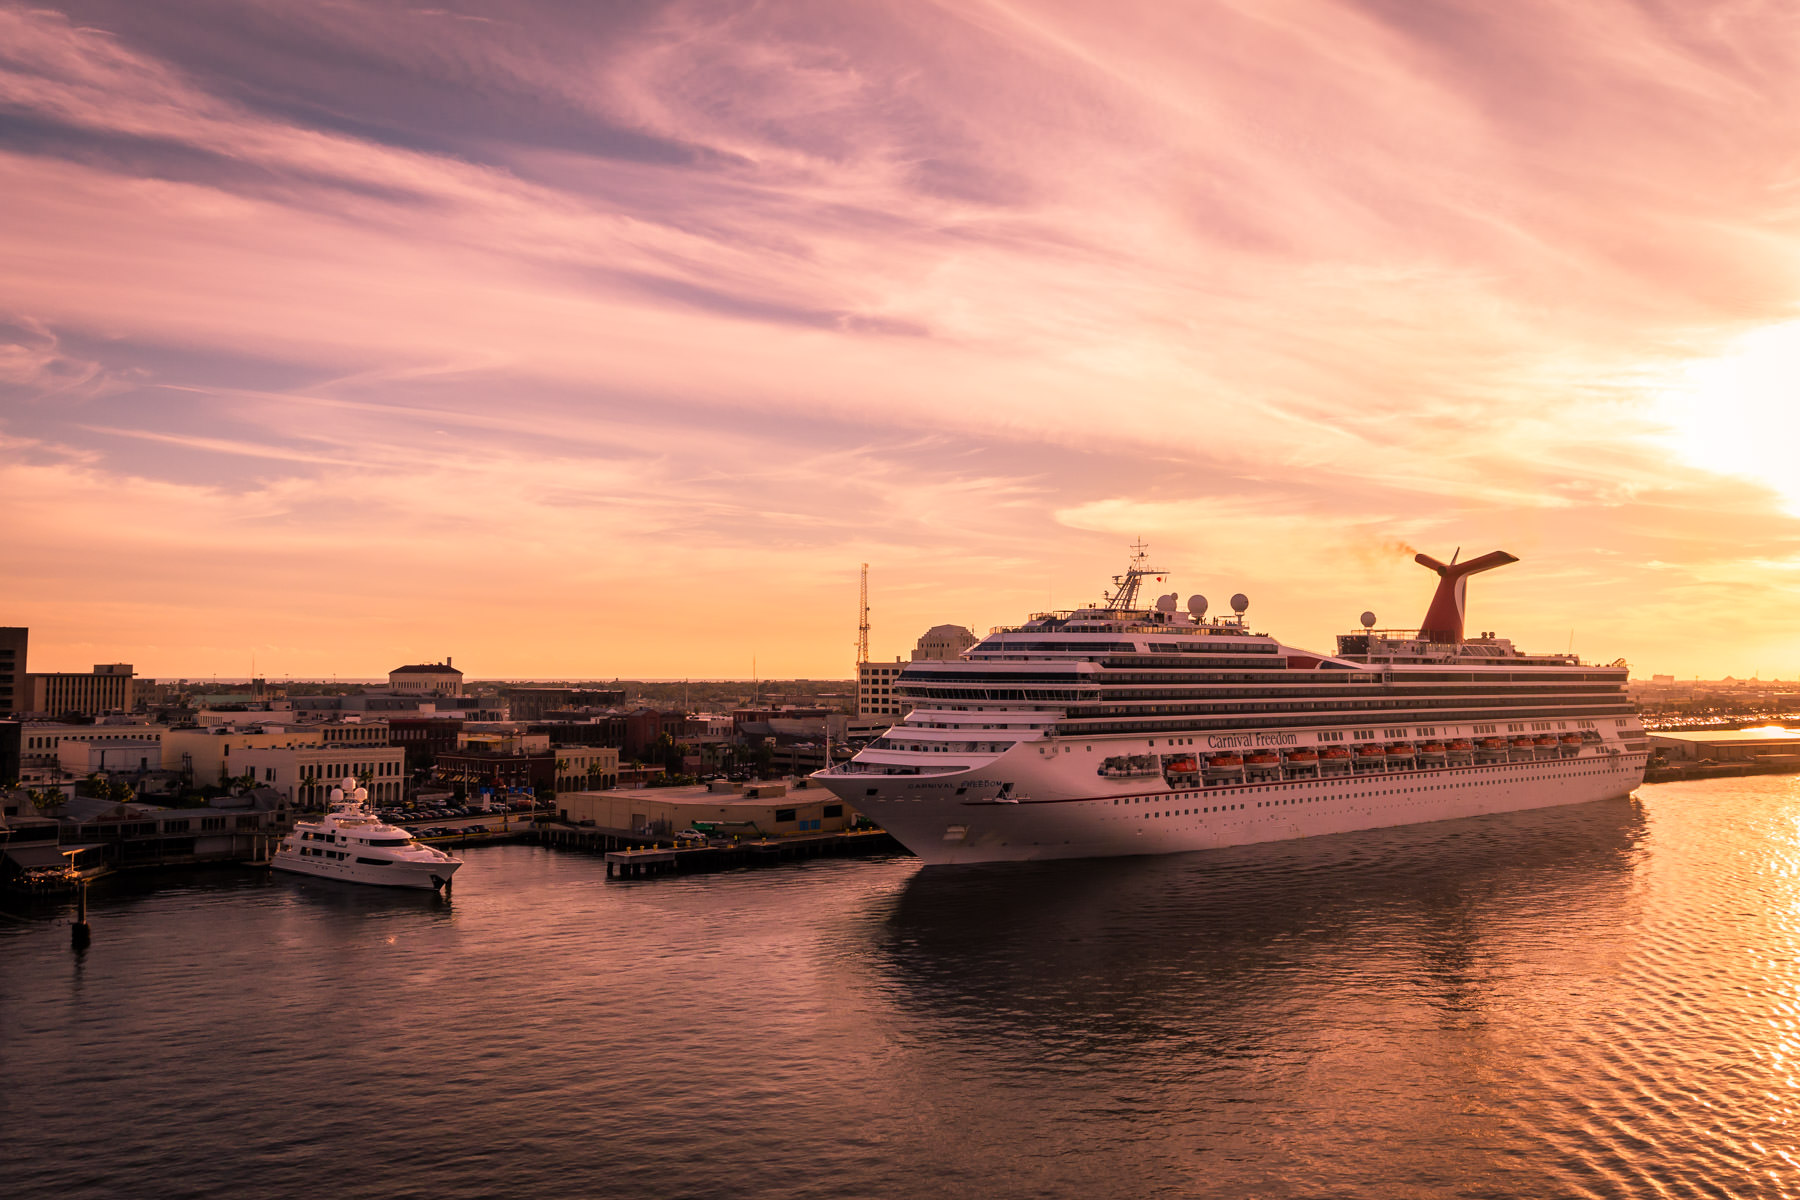 The cruise ship Carnival Freedom, docked in Galveston, Texas.